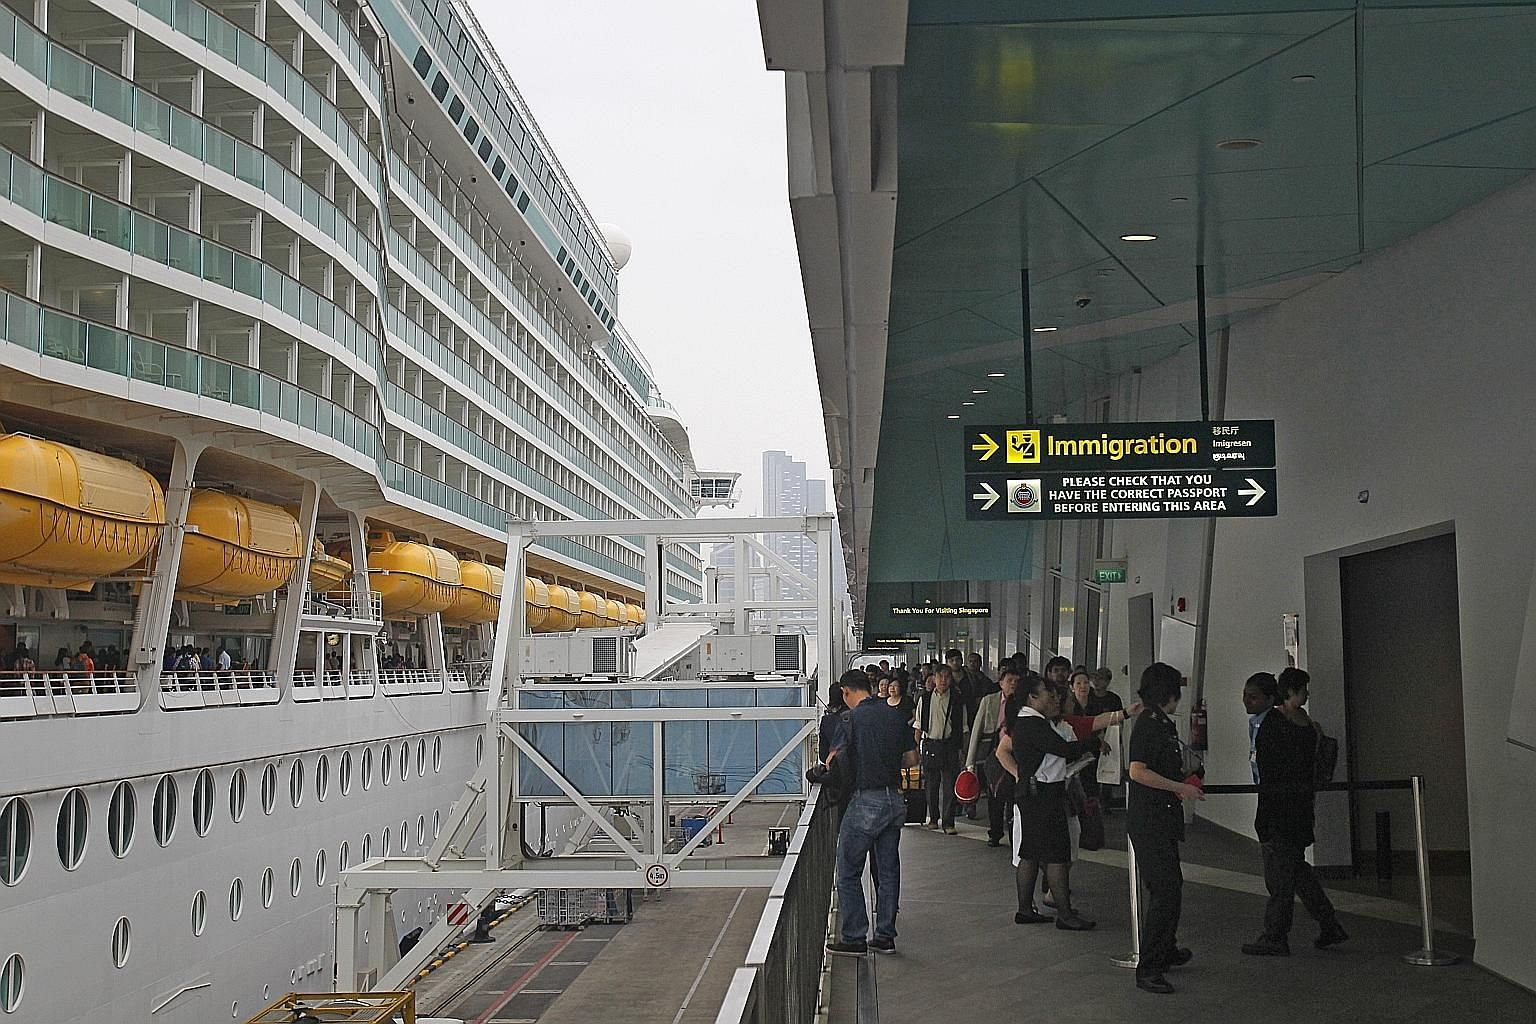 Travellers heading towards Immigration via a link bridge after disembarking from a Royal Caribbean cruise ship. Singapore has become a flourishing entry point for Indian cruise ship passengers, and to better accommodate guests from India, cruise oper